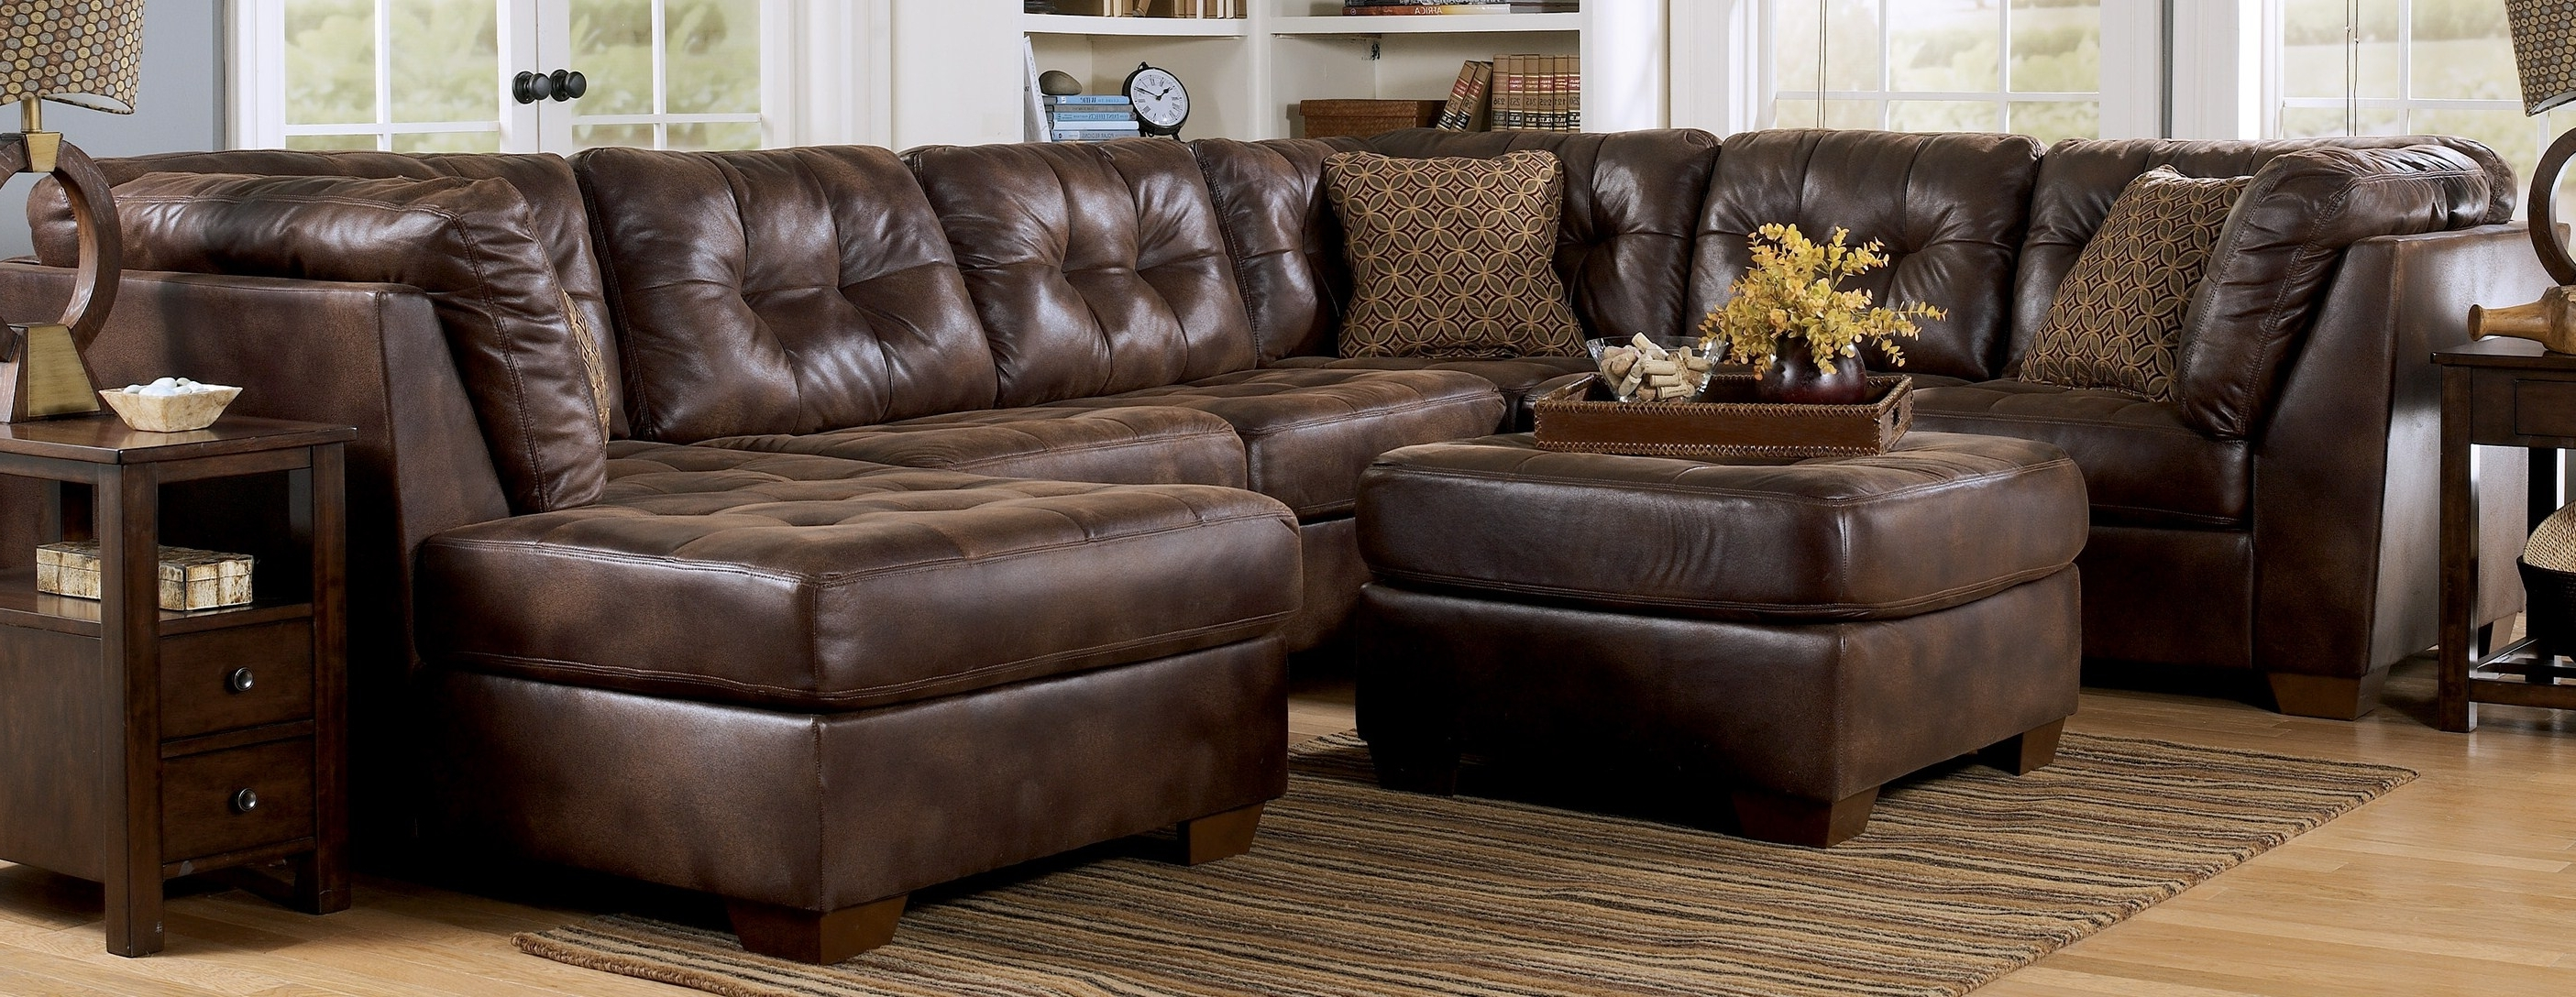 Widely Used Luxury Leather Sectional Sleeper Sofa With Chaise 34 Contemporary Pertaining To Leather Sectional Sleeper Sofas With Chaise (View 2 of 15)